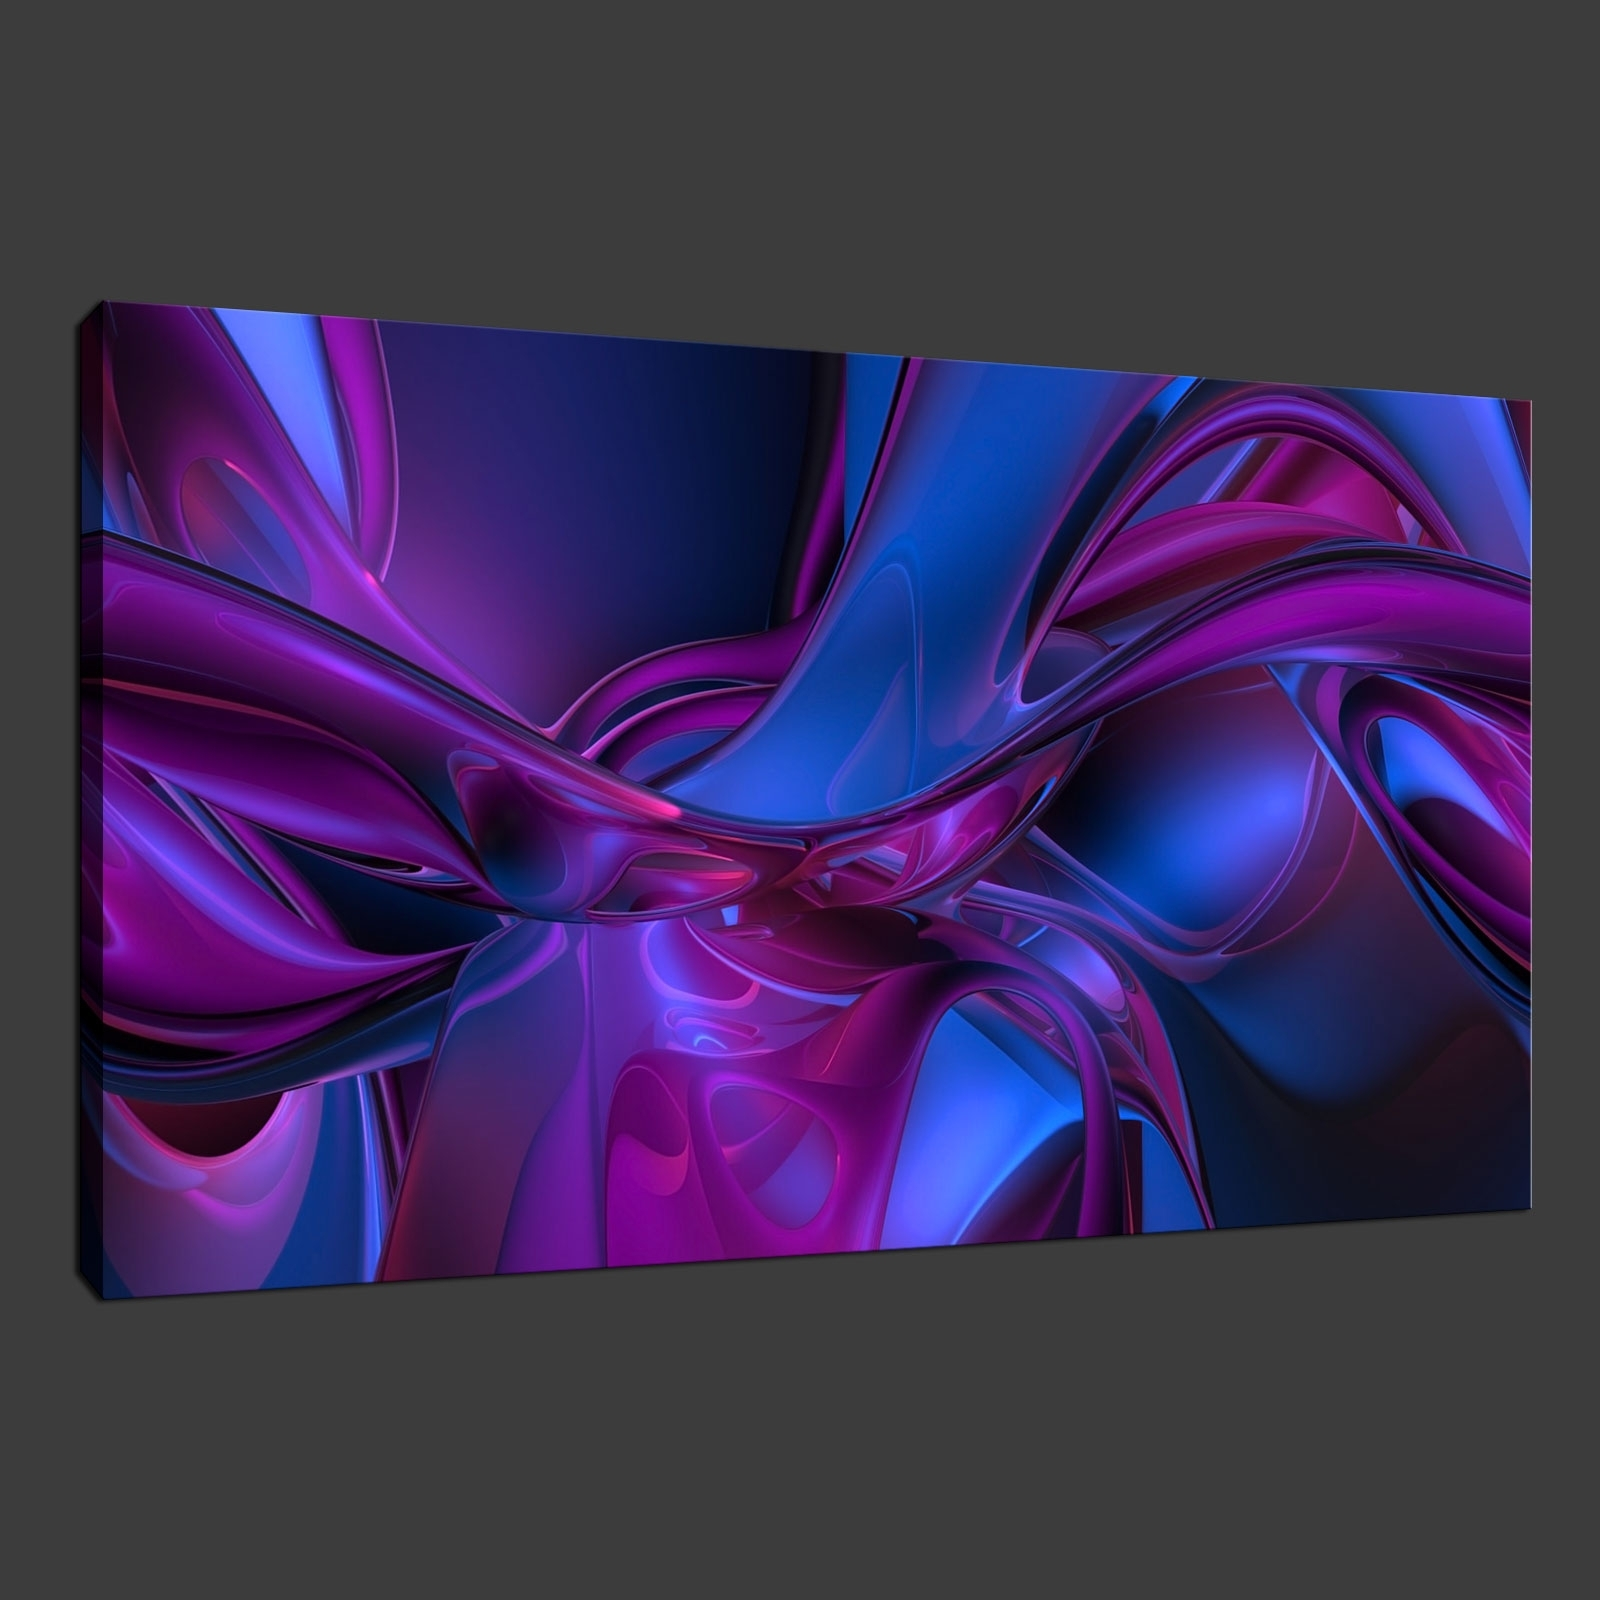 Purple Blue Abstract Premium Canvas Print Wall Art Modern Design With Fashionable Blue Abstract Wall Art (View 5 of 15)